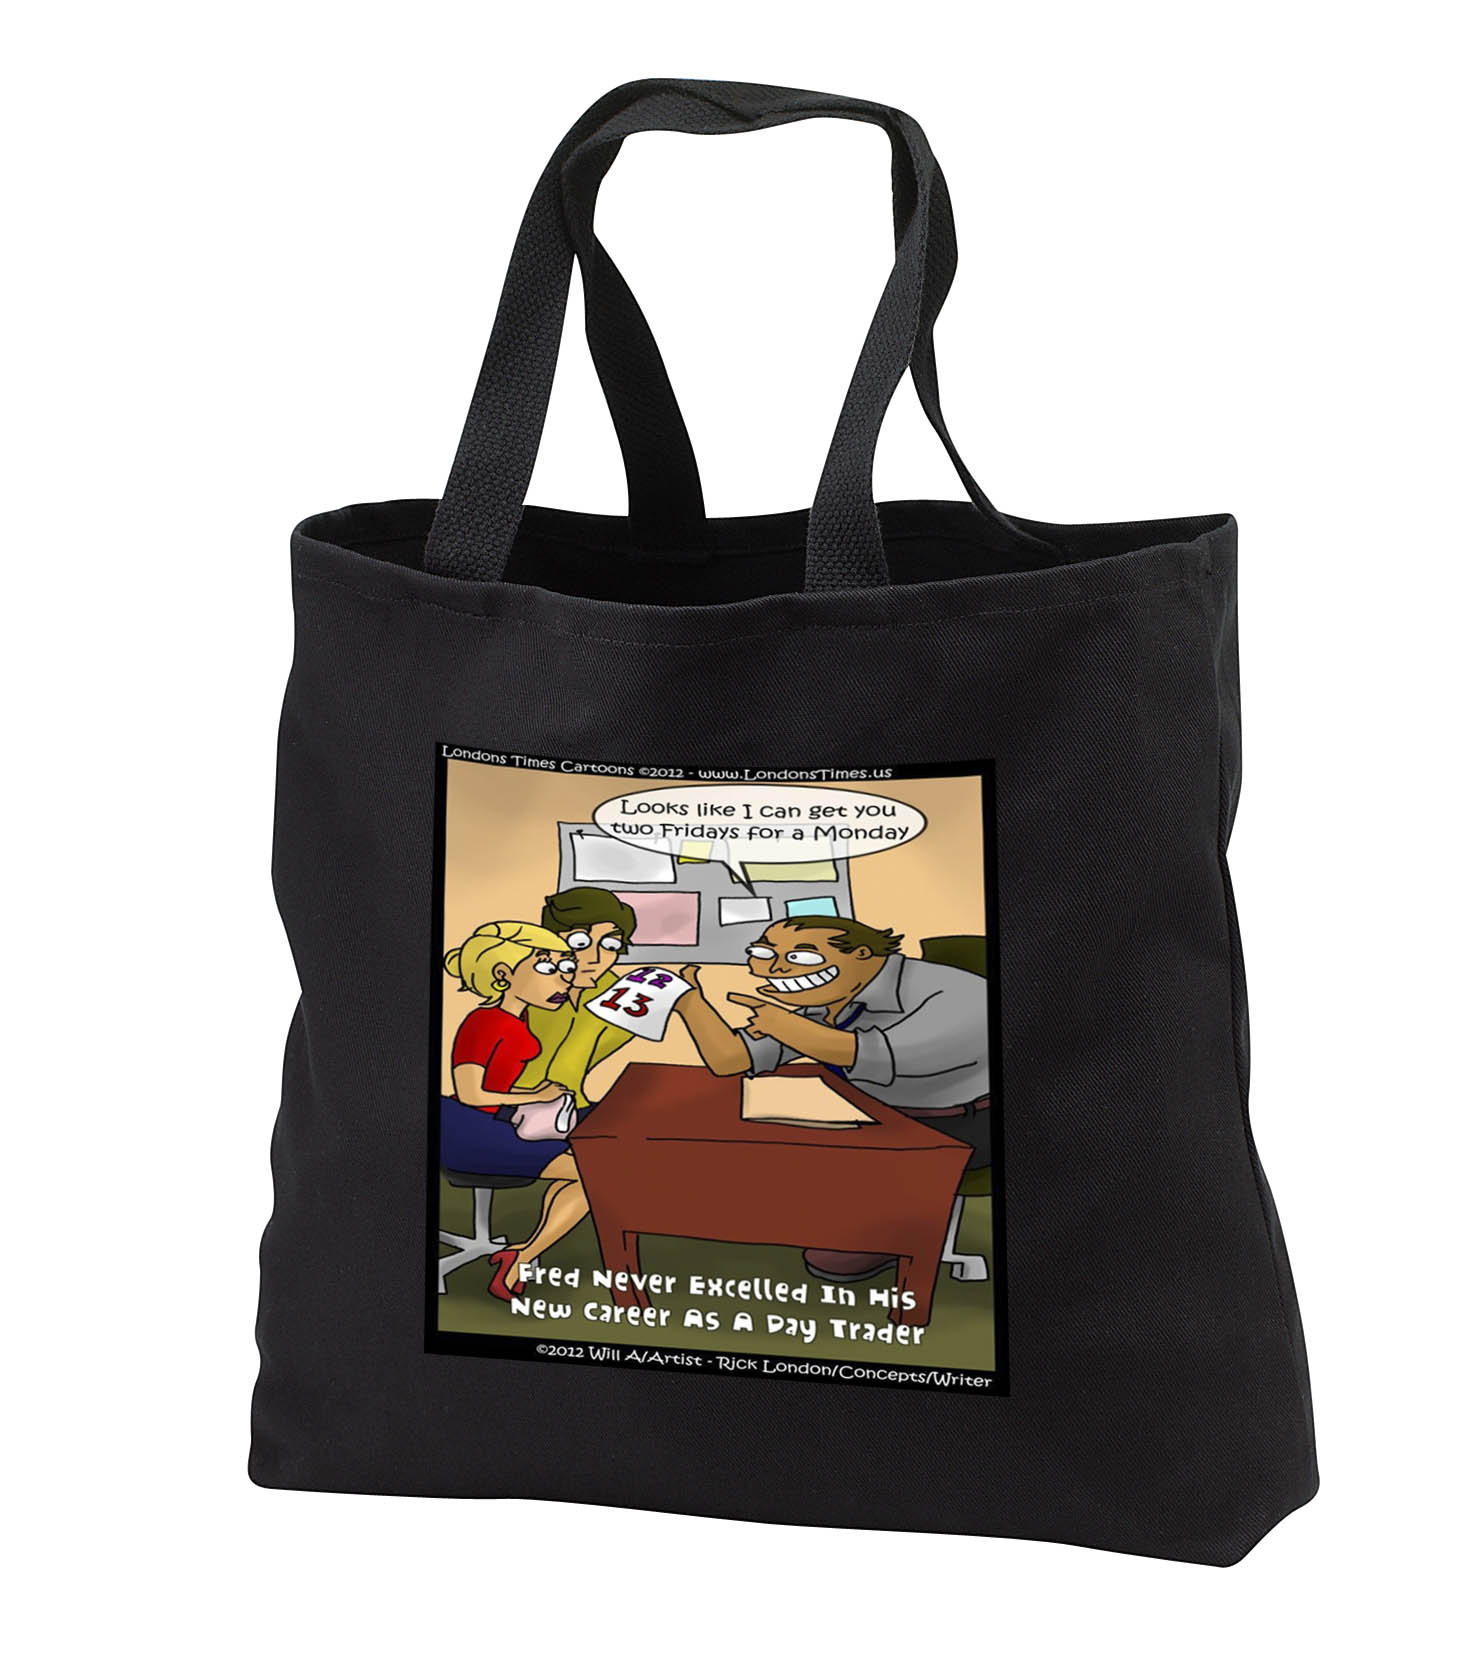 3dRose - Londons Times Offbeat Gen. 2 Cartoons - Stocks/Bonds - Confused Day Trader Funny Gifts - Tote Bags at Sears.com